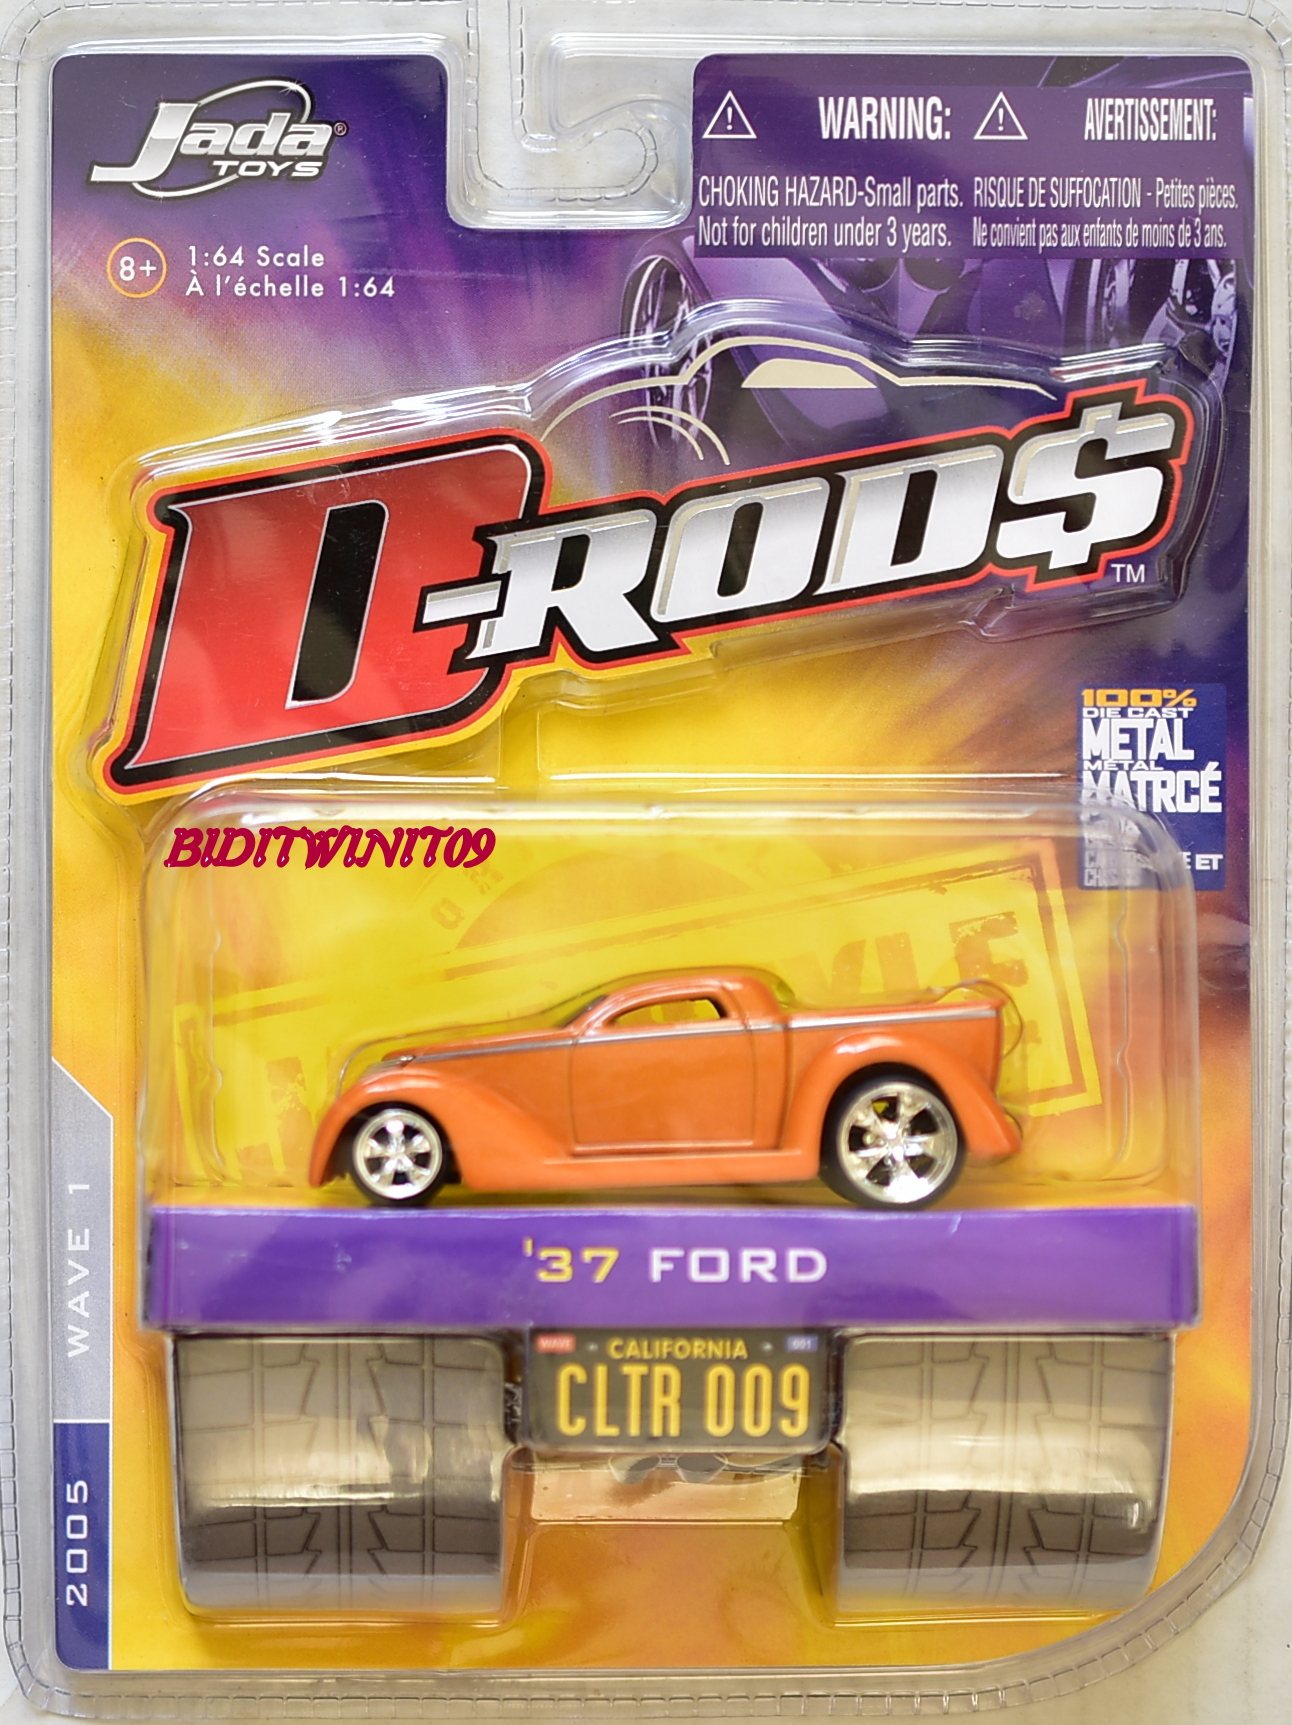 JADA TOYS 2005 WAVE 1 D-RODS '37 FORD CLTR 009